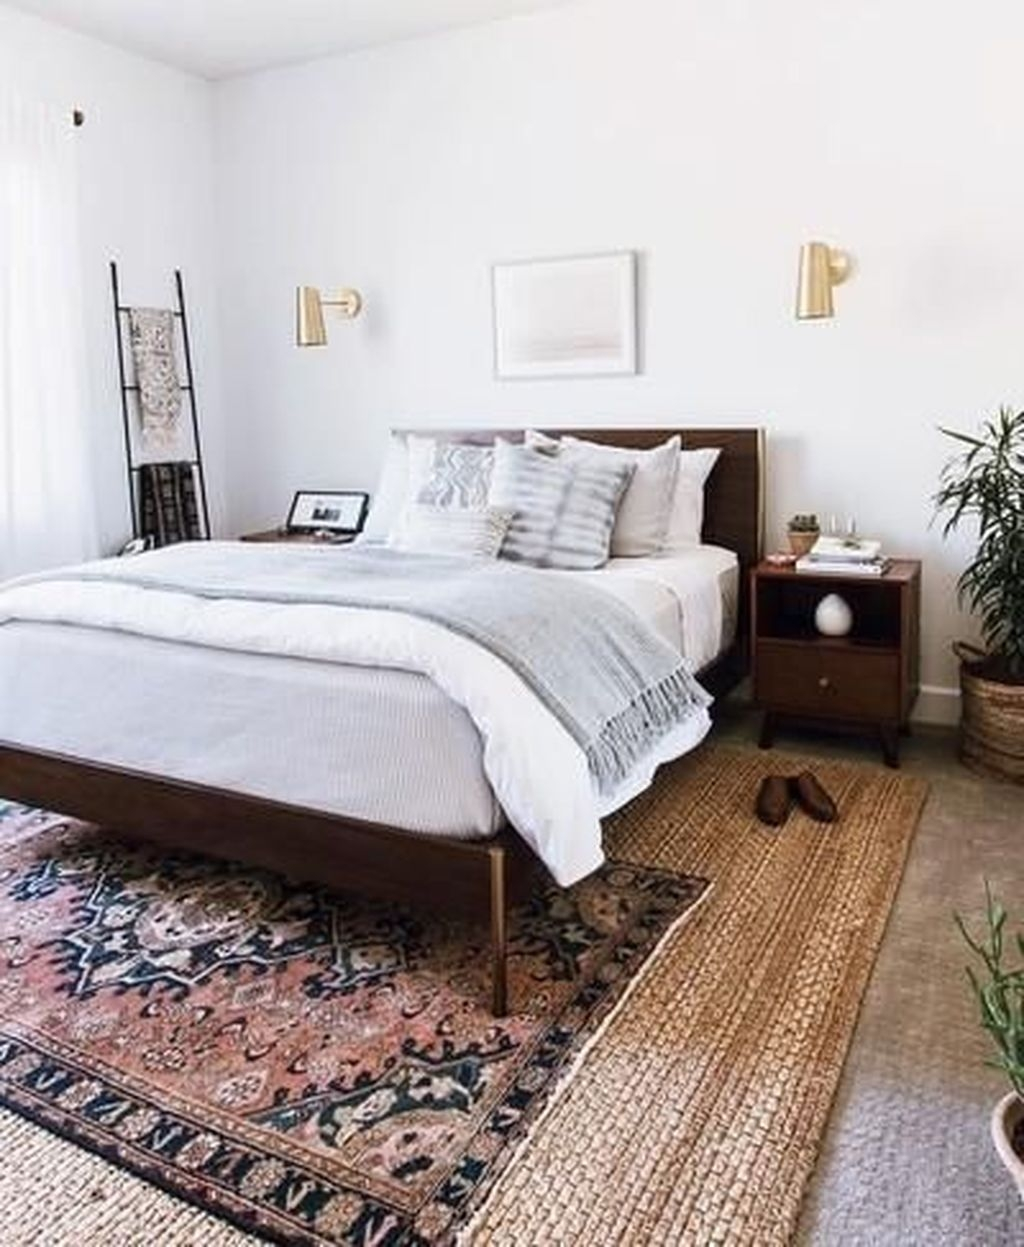 Awesome Bedroom Rug Ideas To Try Asap32